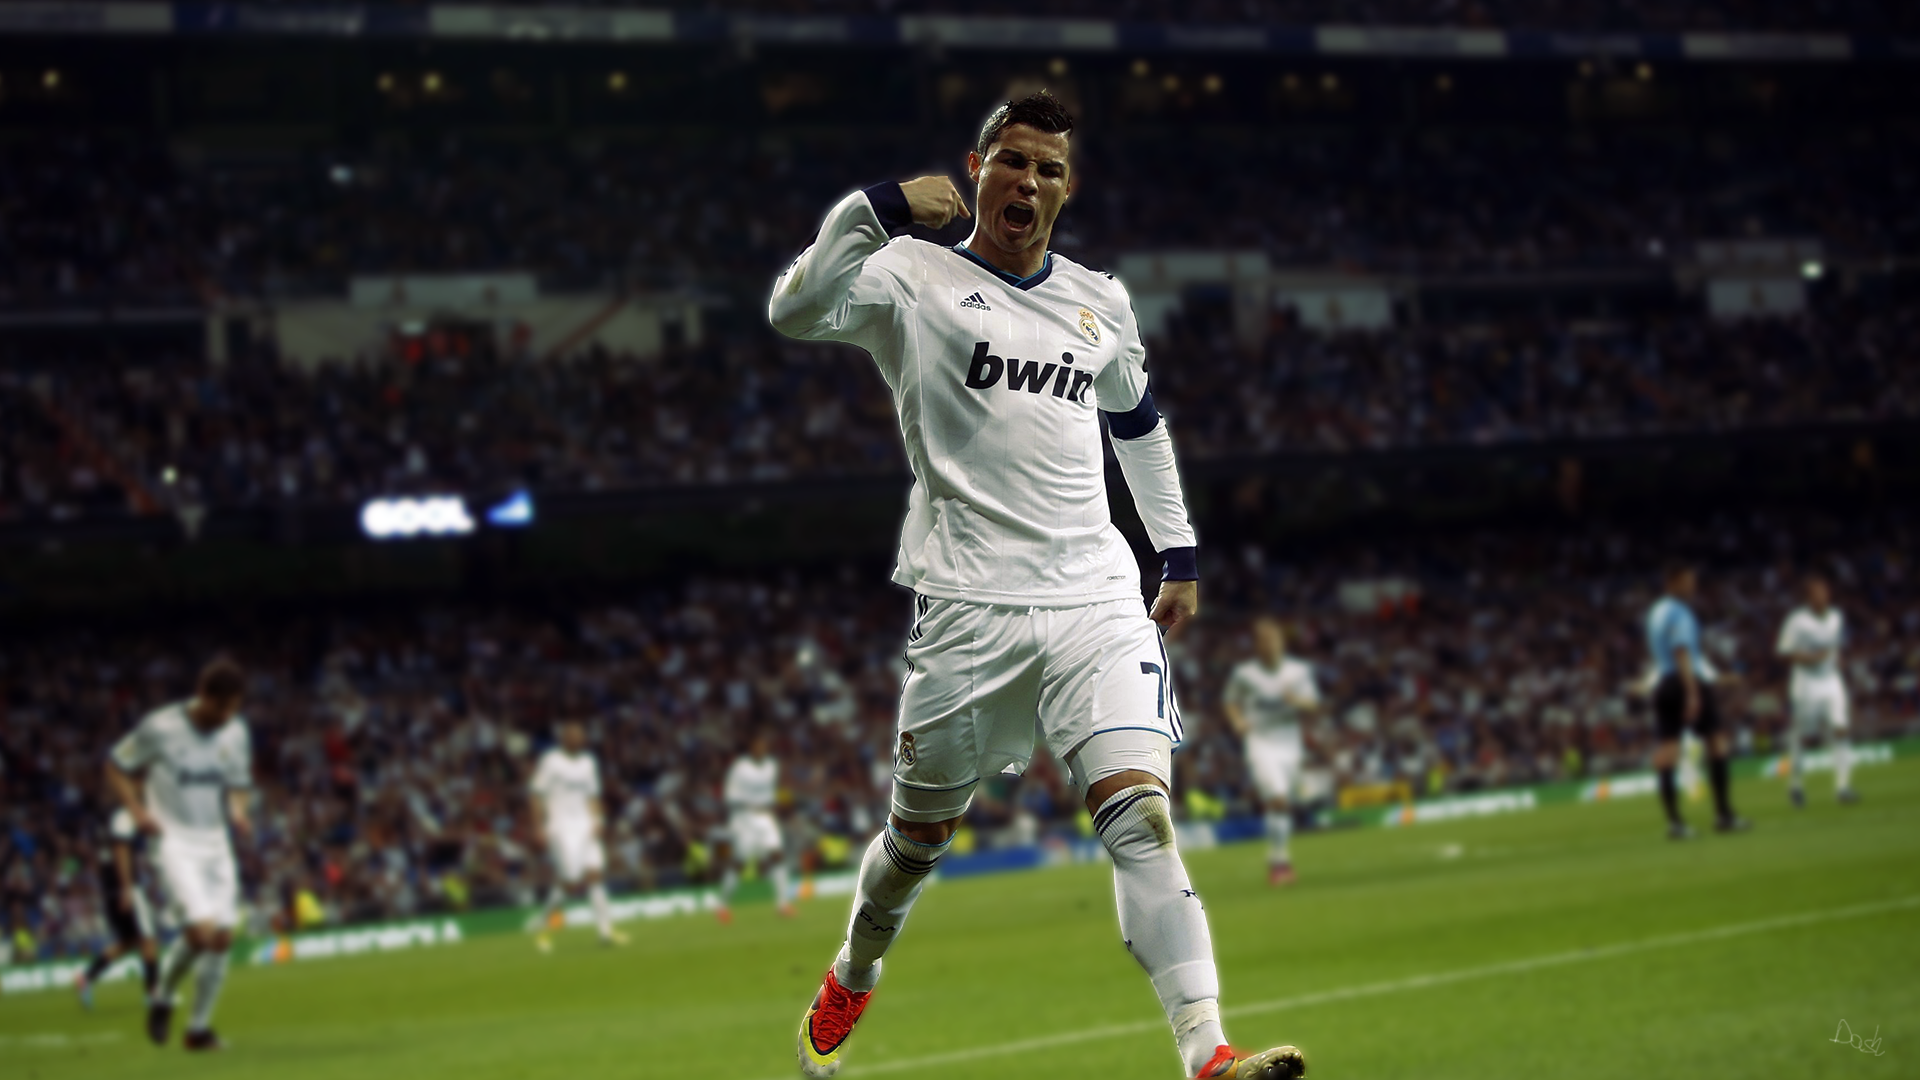 Cristiano ronaldo backgrounds pictures images - Cristiano ronaldo pictures hd ...